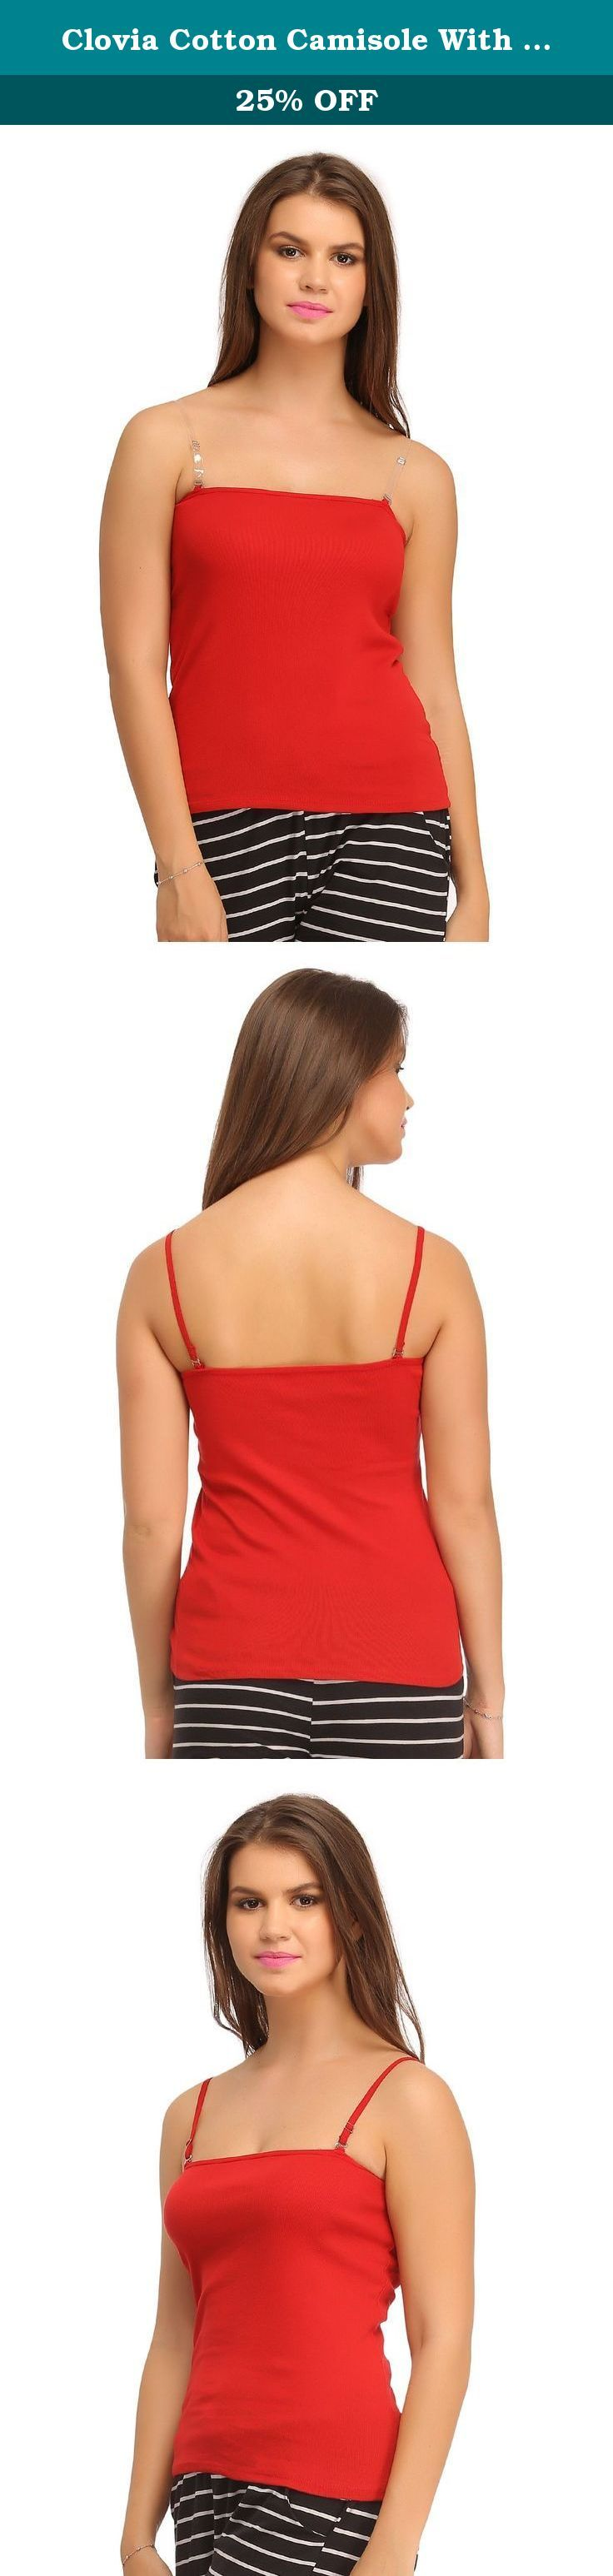 Clovia Cotton Camisole With Detachable Straps - Red. Red coloured cotton camisole with detachable straps.Soft stretchable cotton fabric gives a comfortable feel for all day long.Waist length camisoles, ideal for everyday wear.Sporting an off shoulder style, this camisole has adjustable detachable straps, which can be styled as cross back or multiways too.Note: The actual colour of the product may vary slightly from the colour visible on your screen. Note:- Returns are not acceptable for…